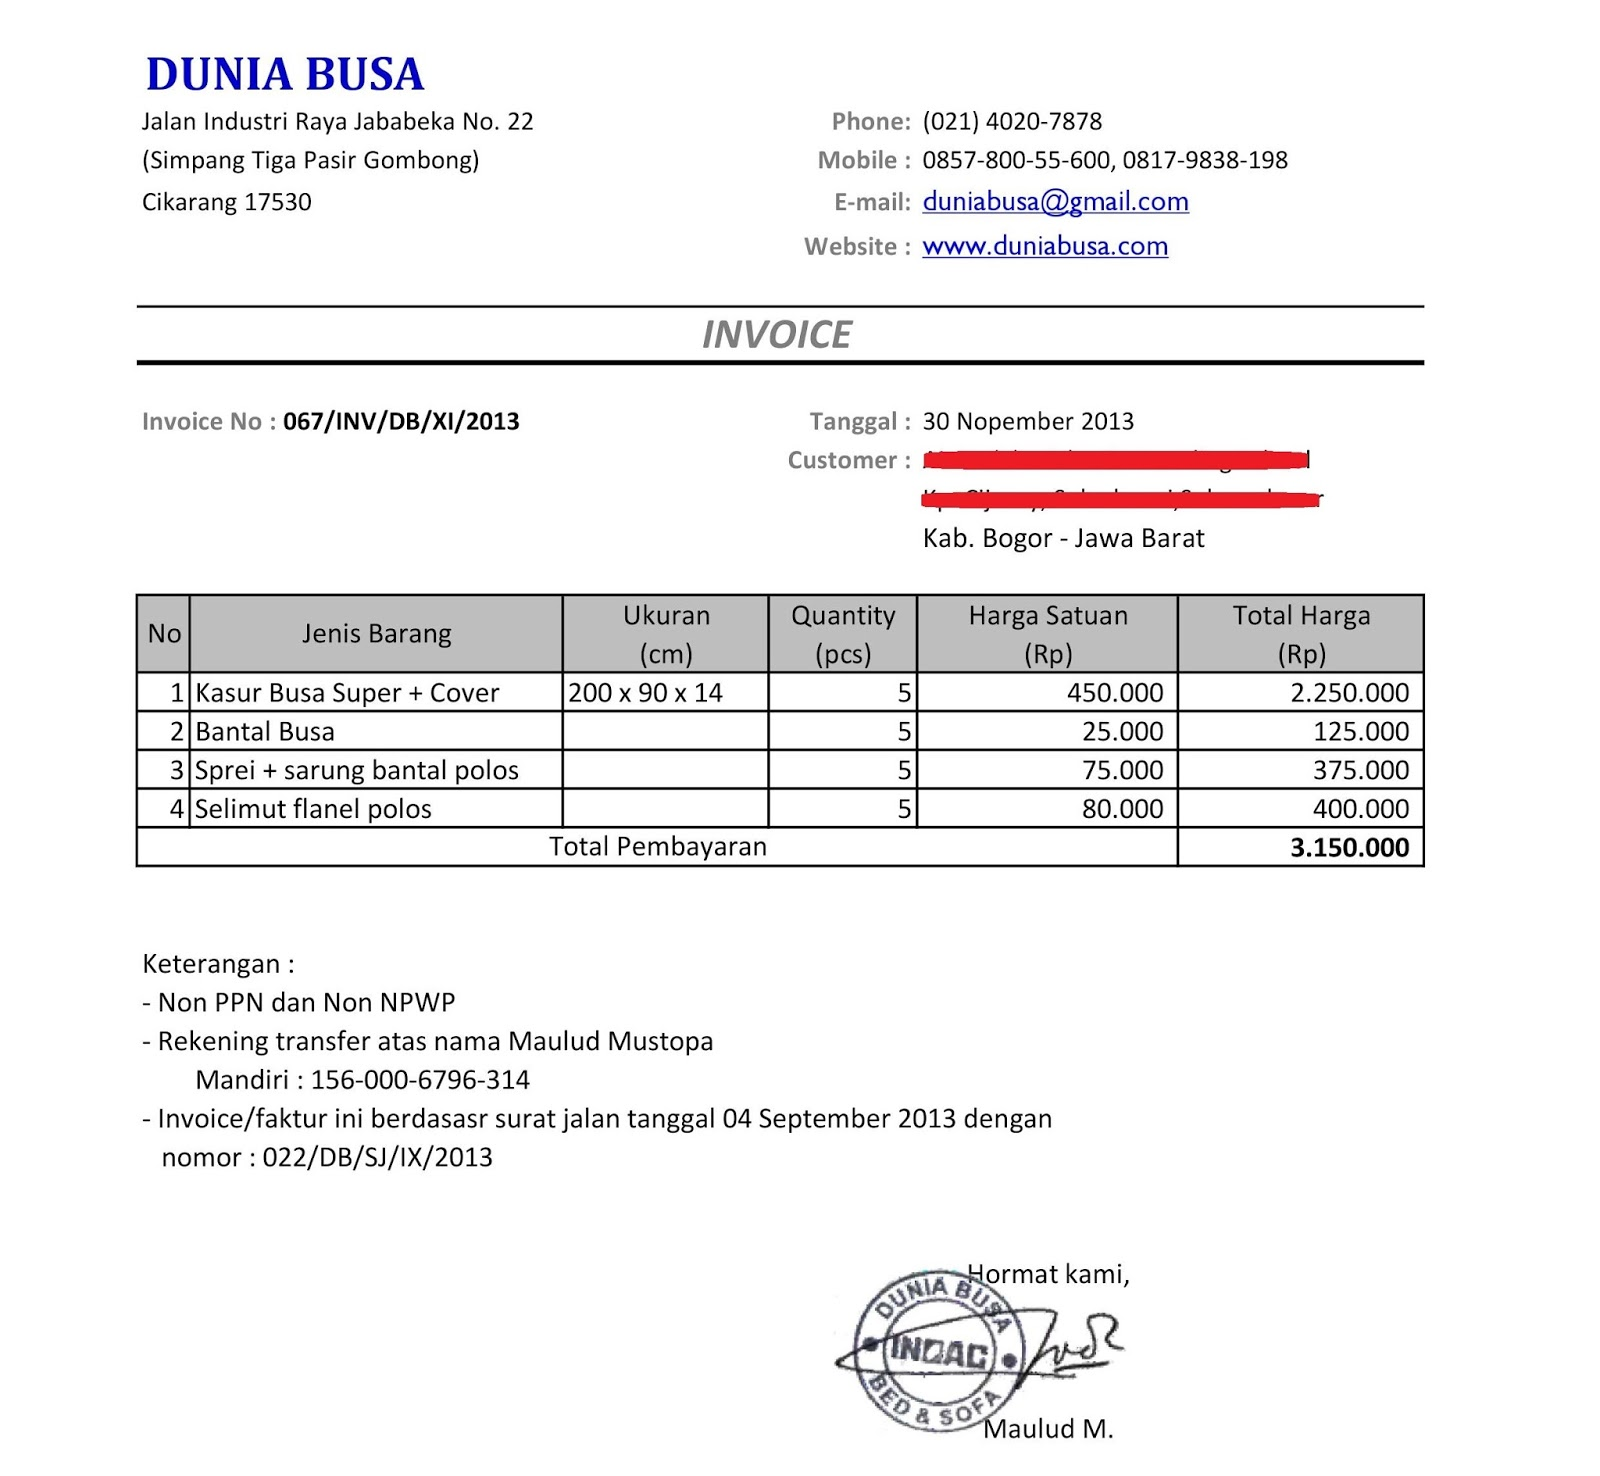 Gpwaus  Unique Free Invoice Online  Create Invoice Online  Invoice Template  With Hot Contoh Format Invoice Atau Surat Tagihan  Brankas Arsip  Free Invoice Online With Adorable Porsche Macan Invoice Also Credit Invoice Template In Addition Tax Invoice Form And How Long To Keep Invoices As Well As Example Of Proforma Invoice Additionally Billing Invoices Free Printable From Sklepco With Gpwaus  Hot Free Invoice Online  Create Invoice Online  Invoice Template  With Adorable Contoh Format Invoice Atau Surat Tagihan  Brankas Arsip  Free Invoice Online And Unique Porsche Macan Invoice Also Credit Invoice Template In Addition Tax Invoice Form From Sklepco